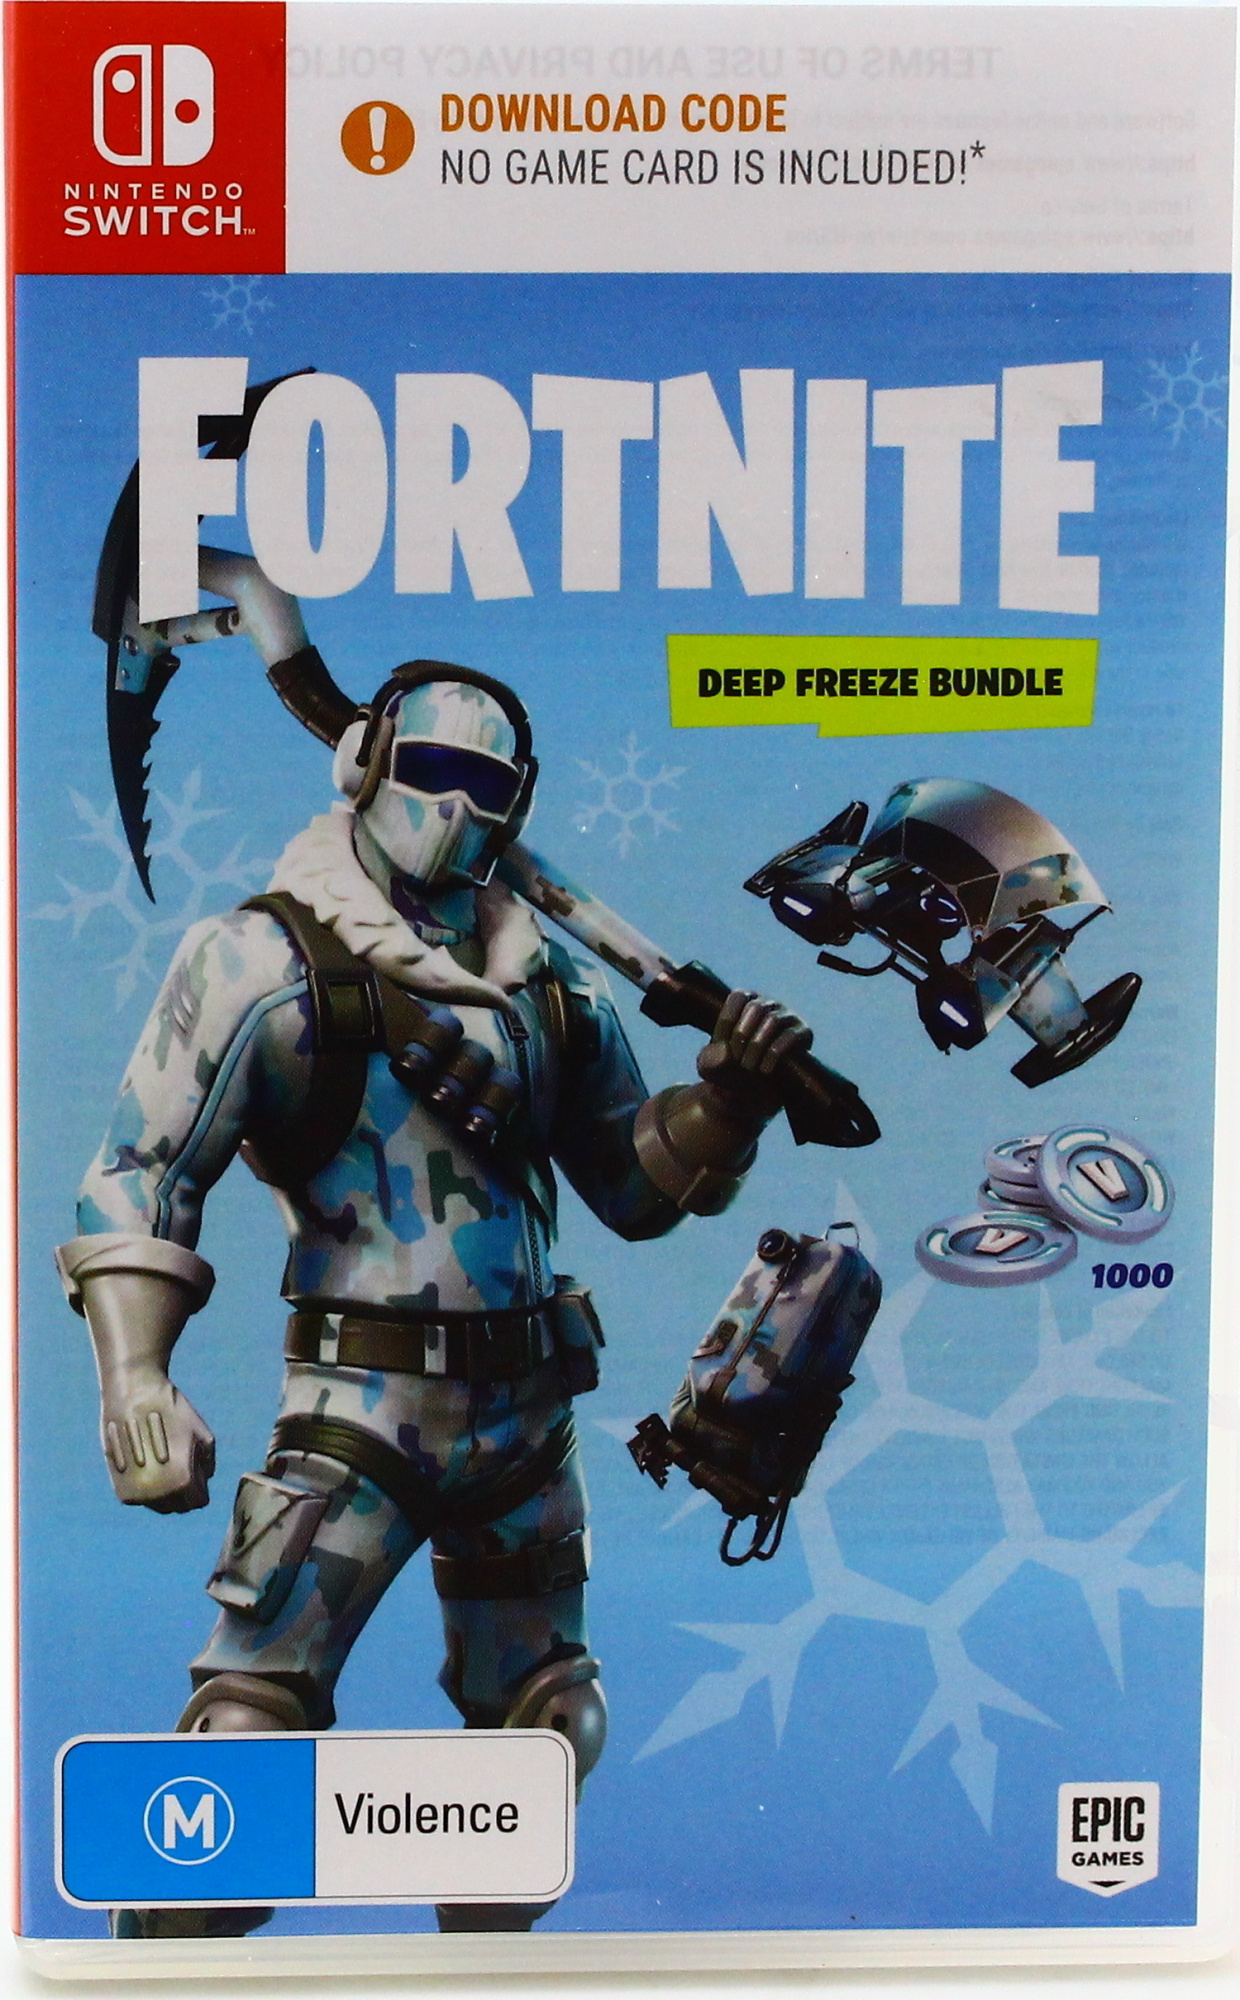 Nintendo Switch Fortnite Deep Freeze Bundle By Nintendo Switch Shop Online For Games In The United States